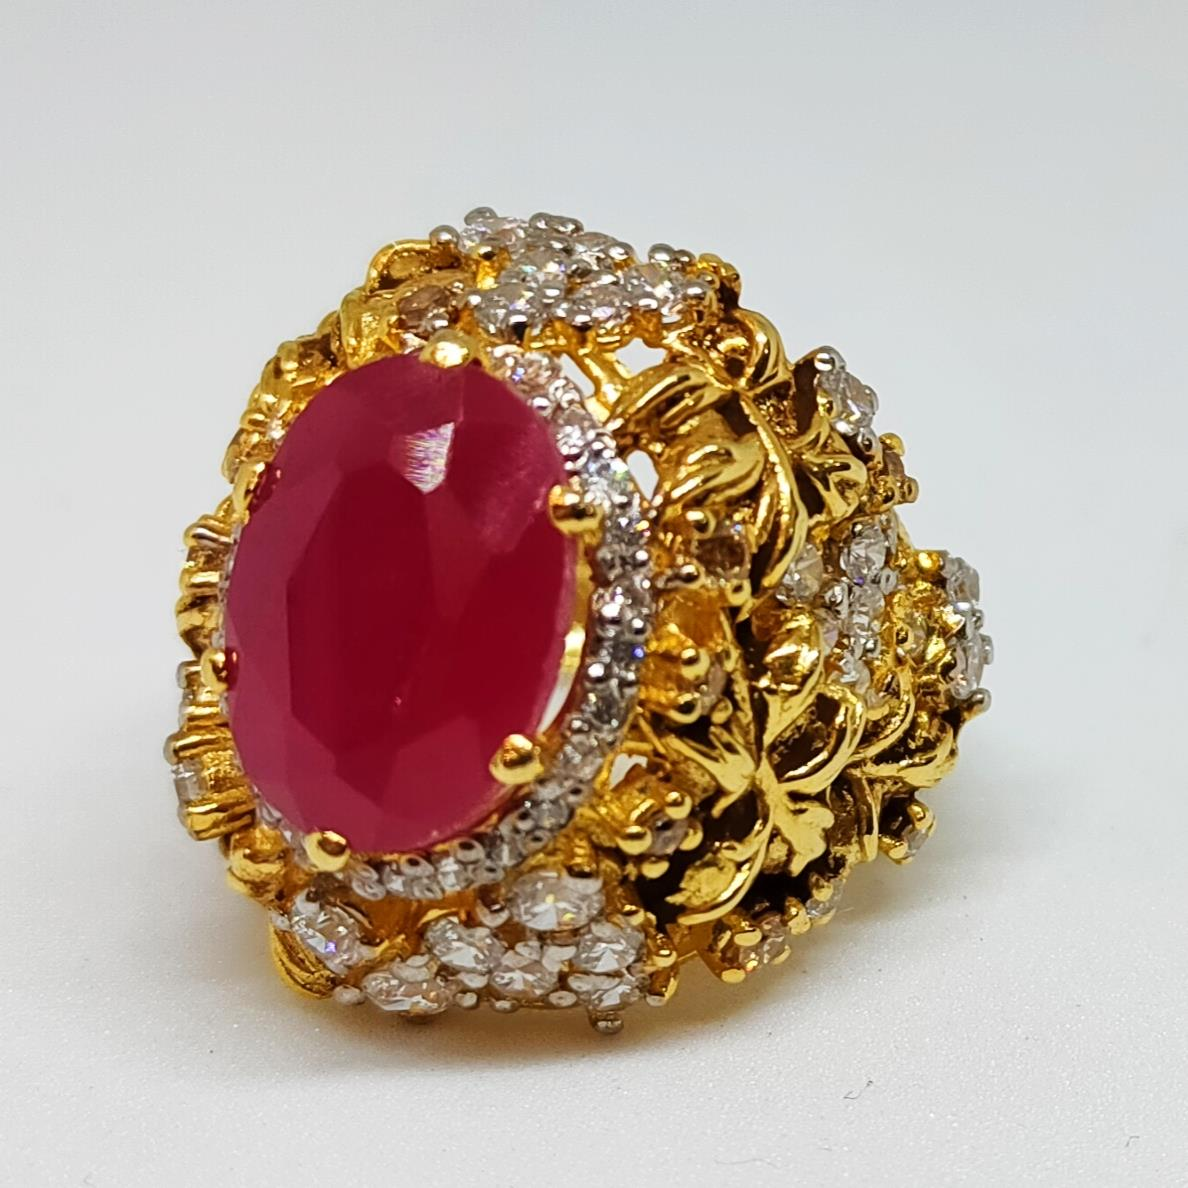 Gold Plated 925 Silver Ring Italian 2 natural gemstones pakistan + 925 silver jewelry online